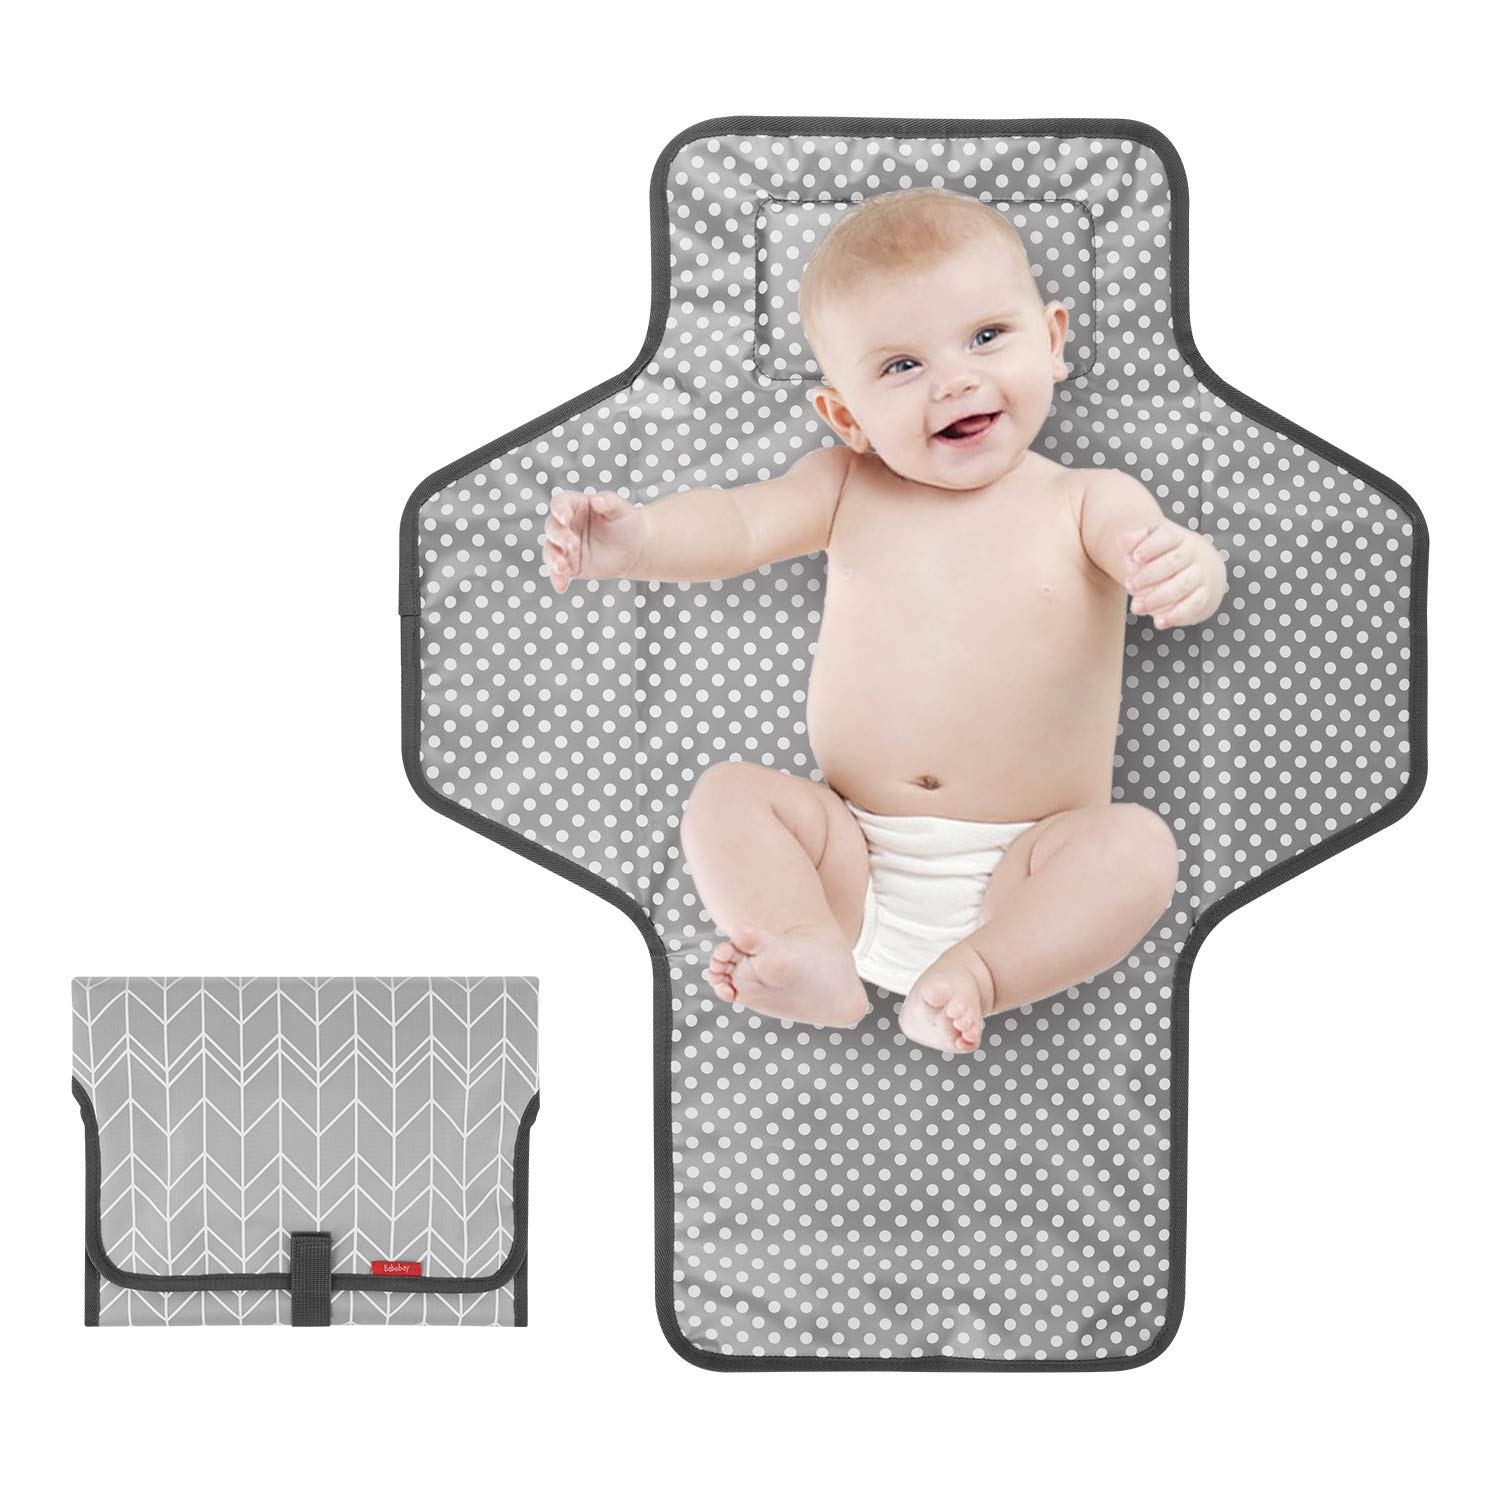 Portable Changing Pad for Baby|Travel Baby Changing Pads for Moms, Dads|Waterproof Portable Changing Mat with Built-in Pillow|Excellent Baby Shower/Registry Gifts